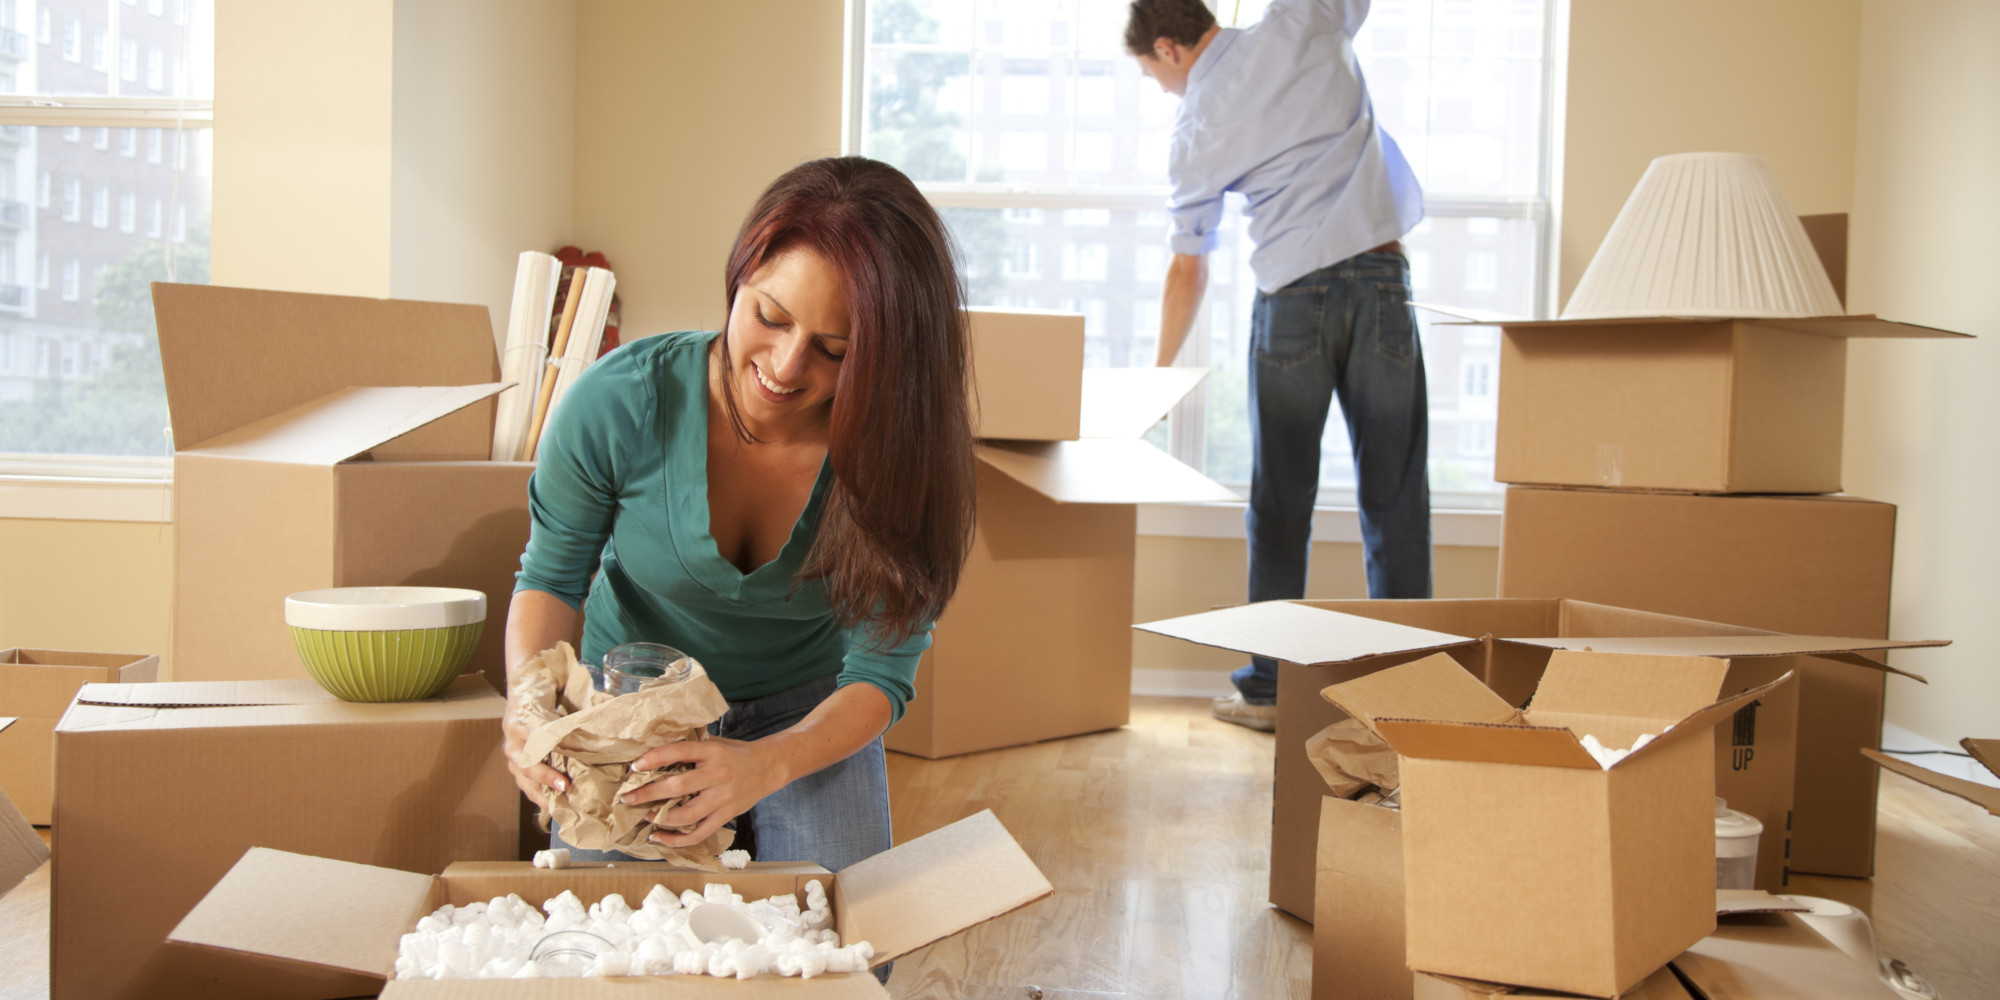 house moving 2018-09-08 moving is one of the hardest things you'll ever do so to help with all the upcoming stress, use these guides to ease your frustration and worries when moving.